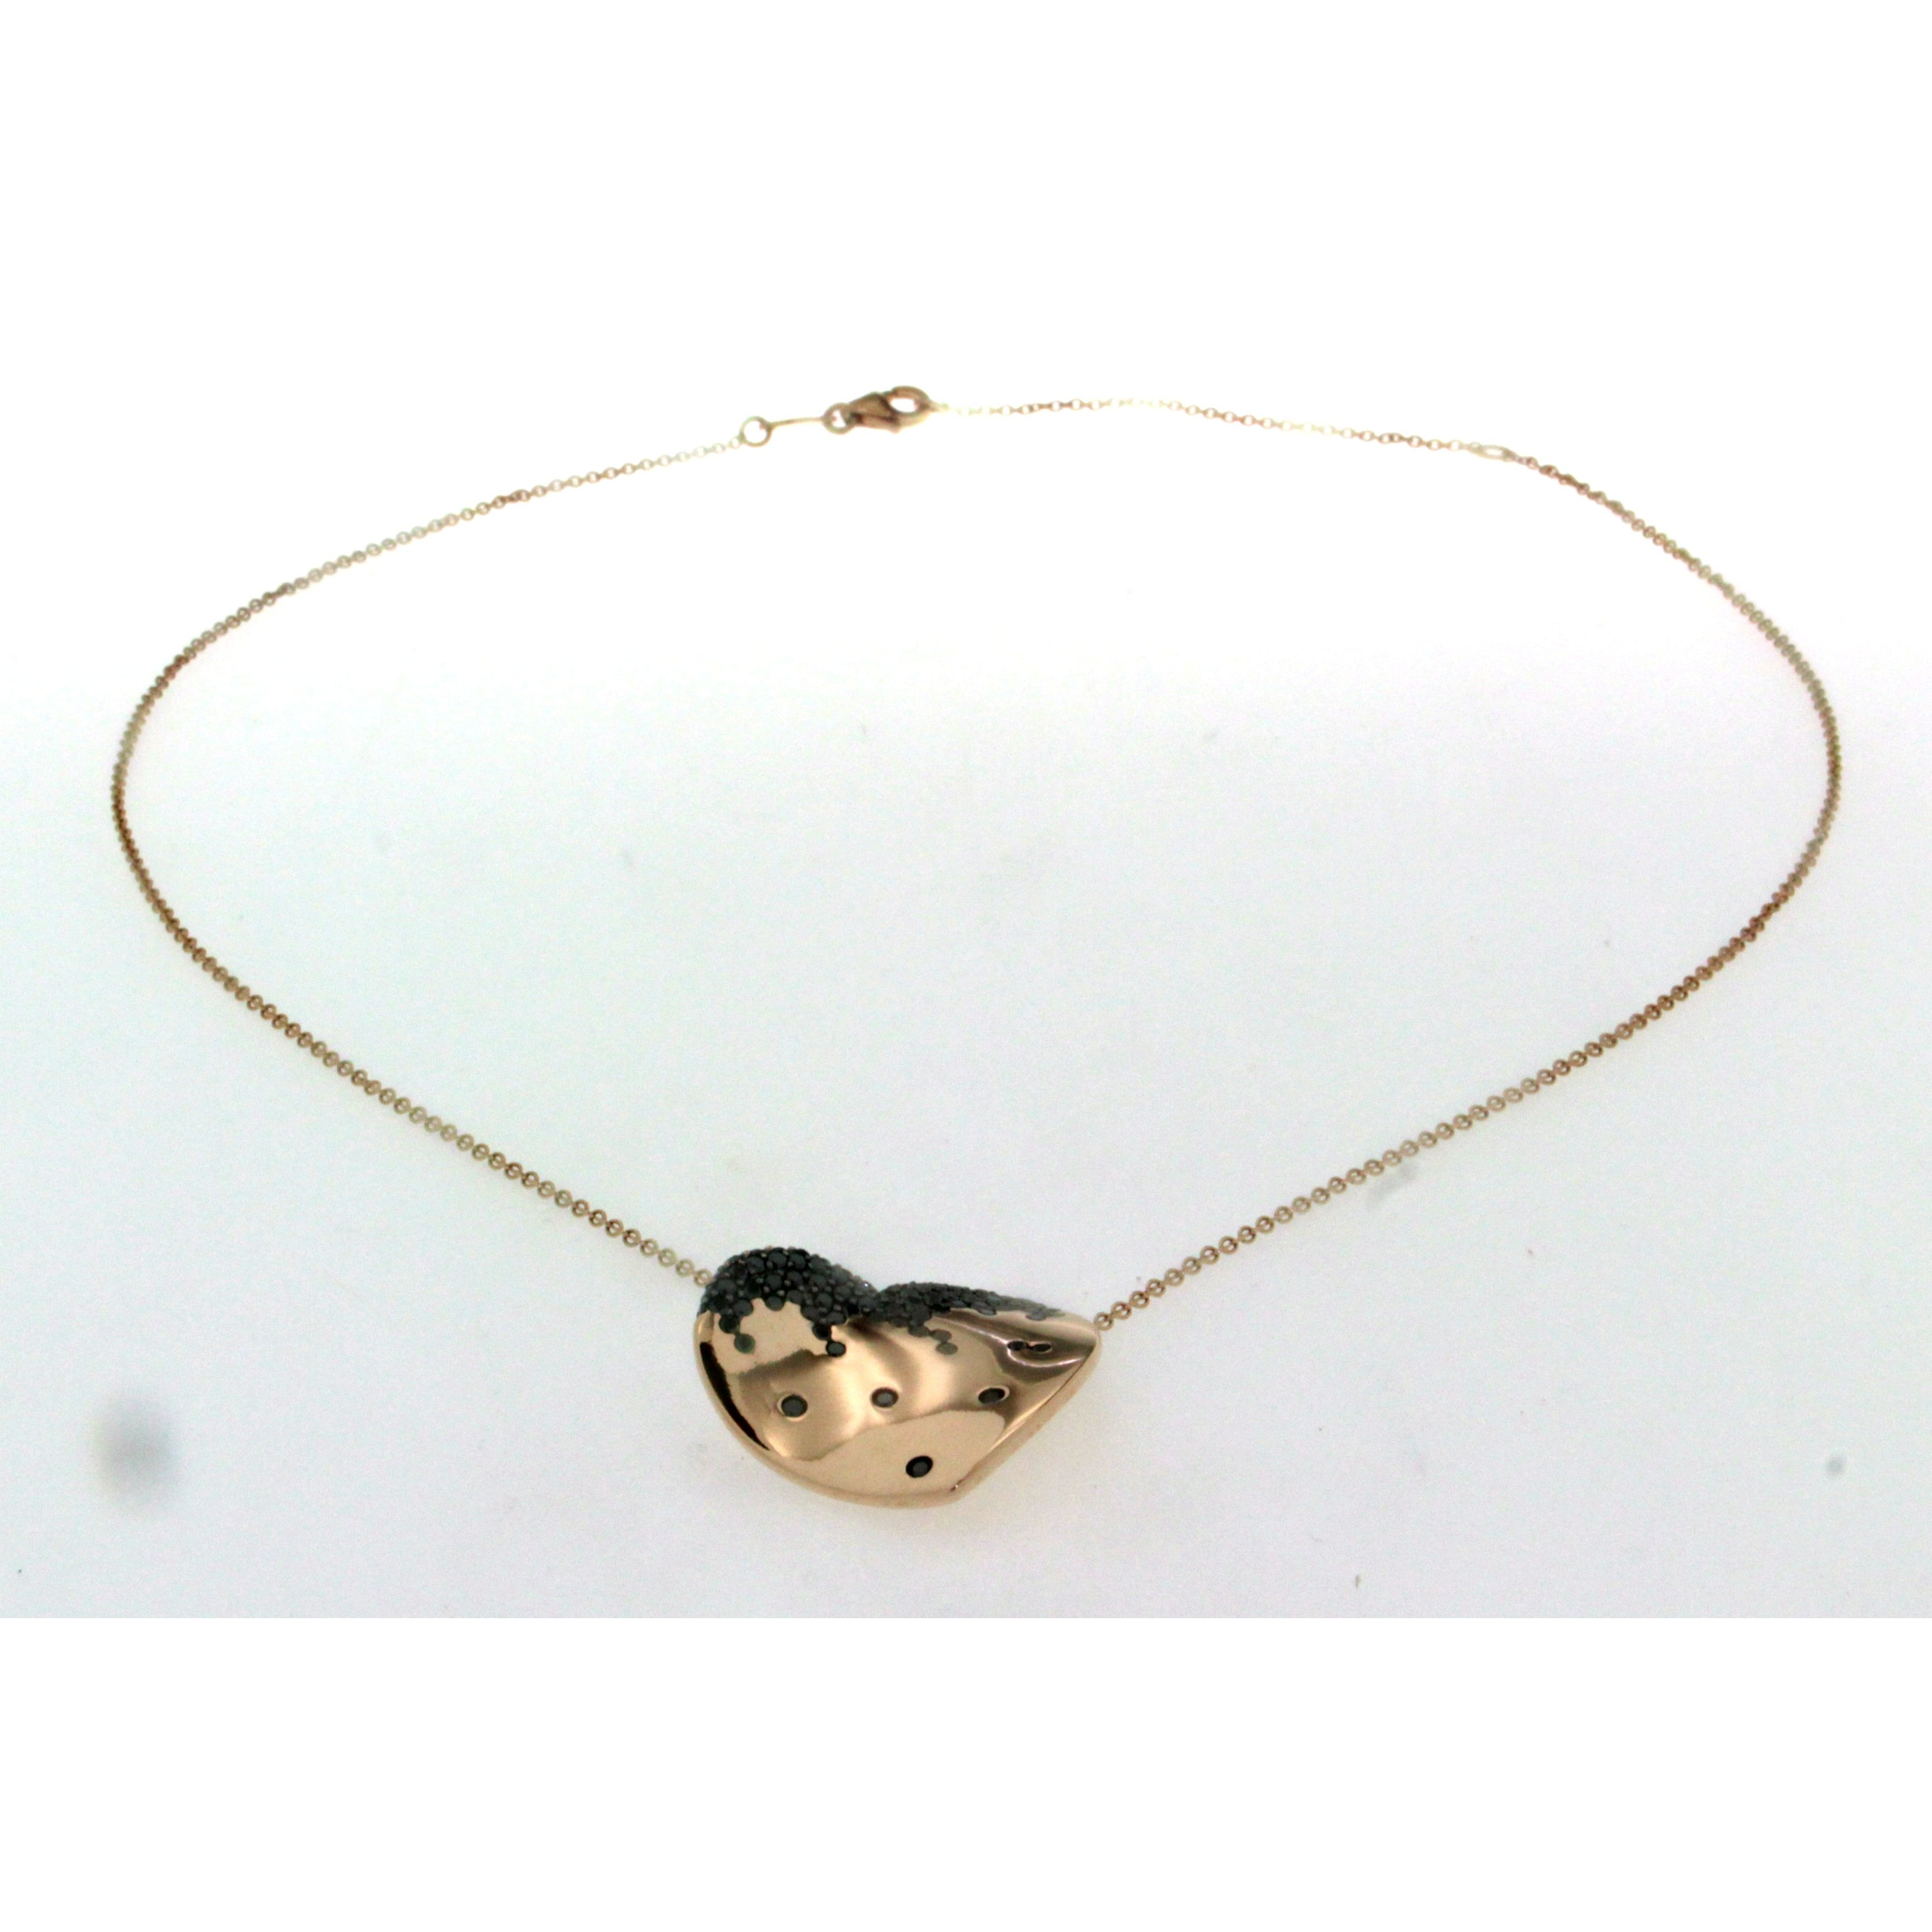 Necklace in 18ct rose gold with pavé set black diamonds heart pendant